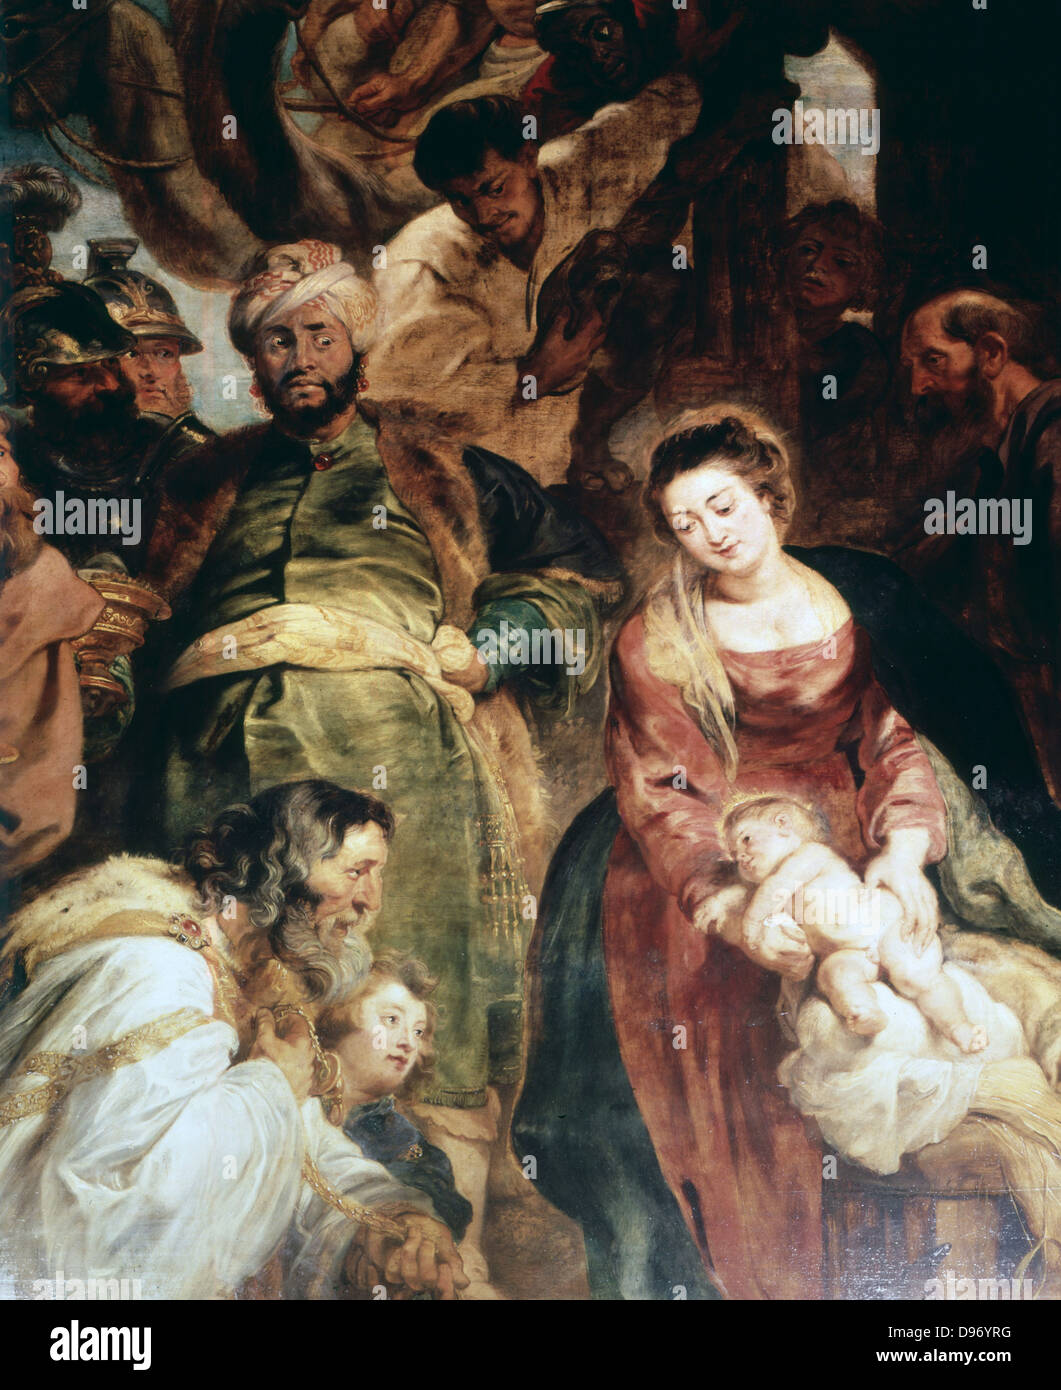 Adoration of the Kings', 1624: Peter Paul Rubens (1577-1640) Flemish painter. Oil on wood. - Stock Image